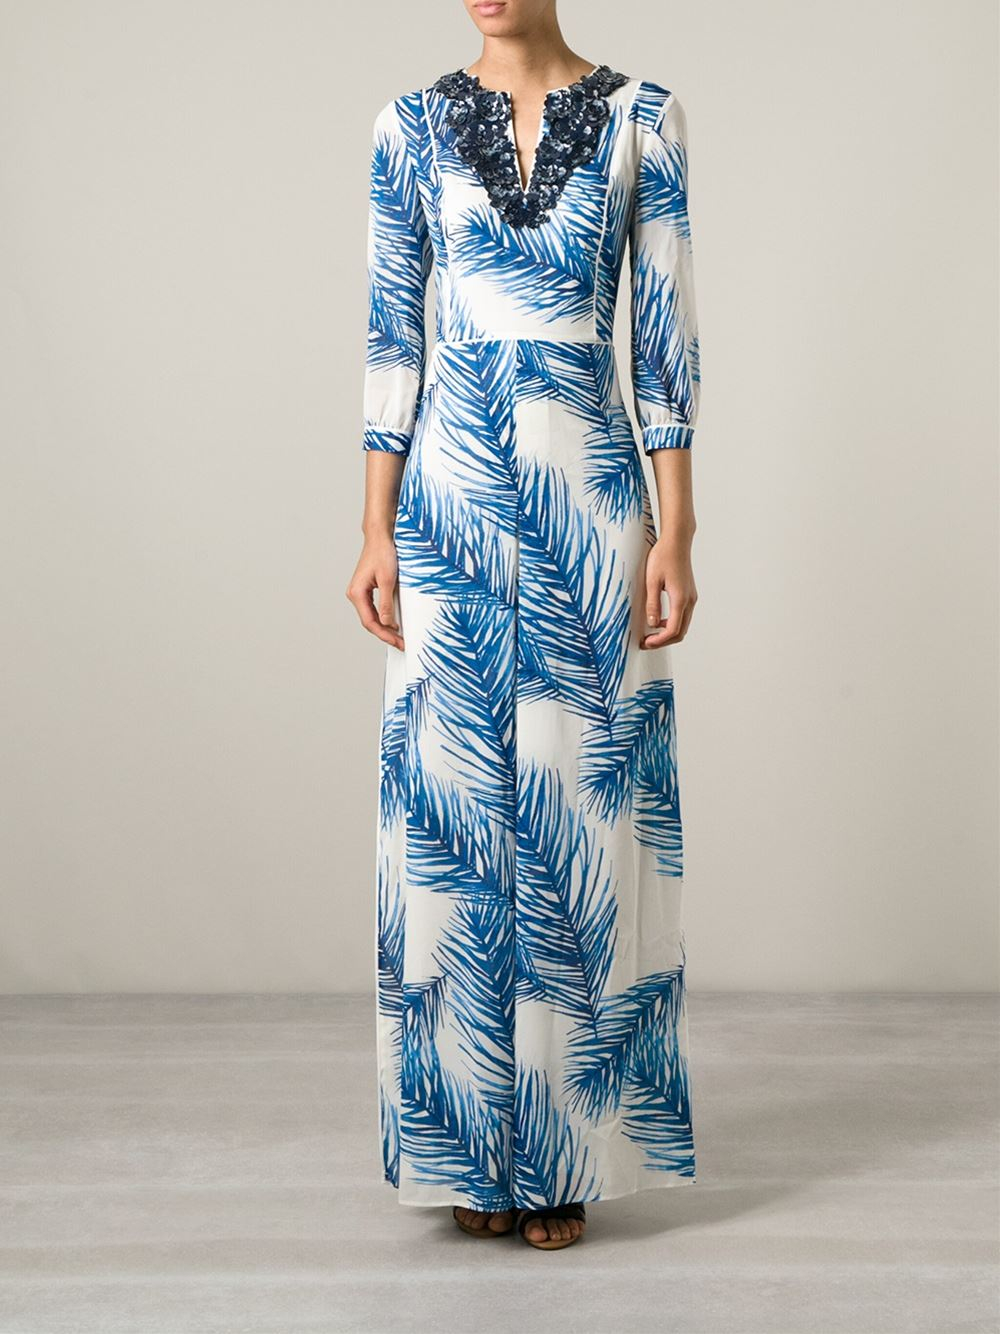 NWT $895 Tory Burch Baltic Sea Blue Sequined Feather Print Maxi ...